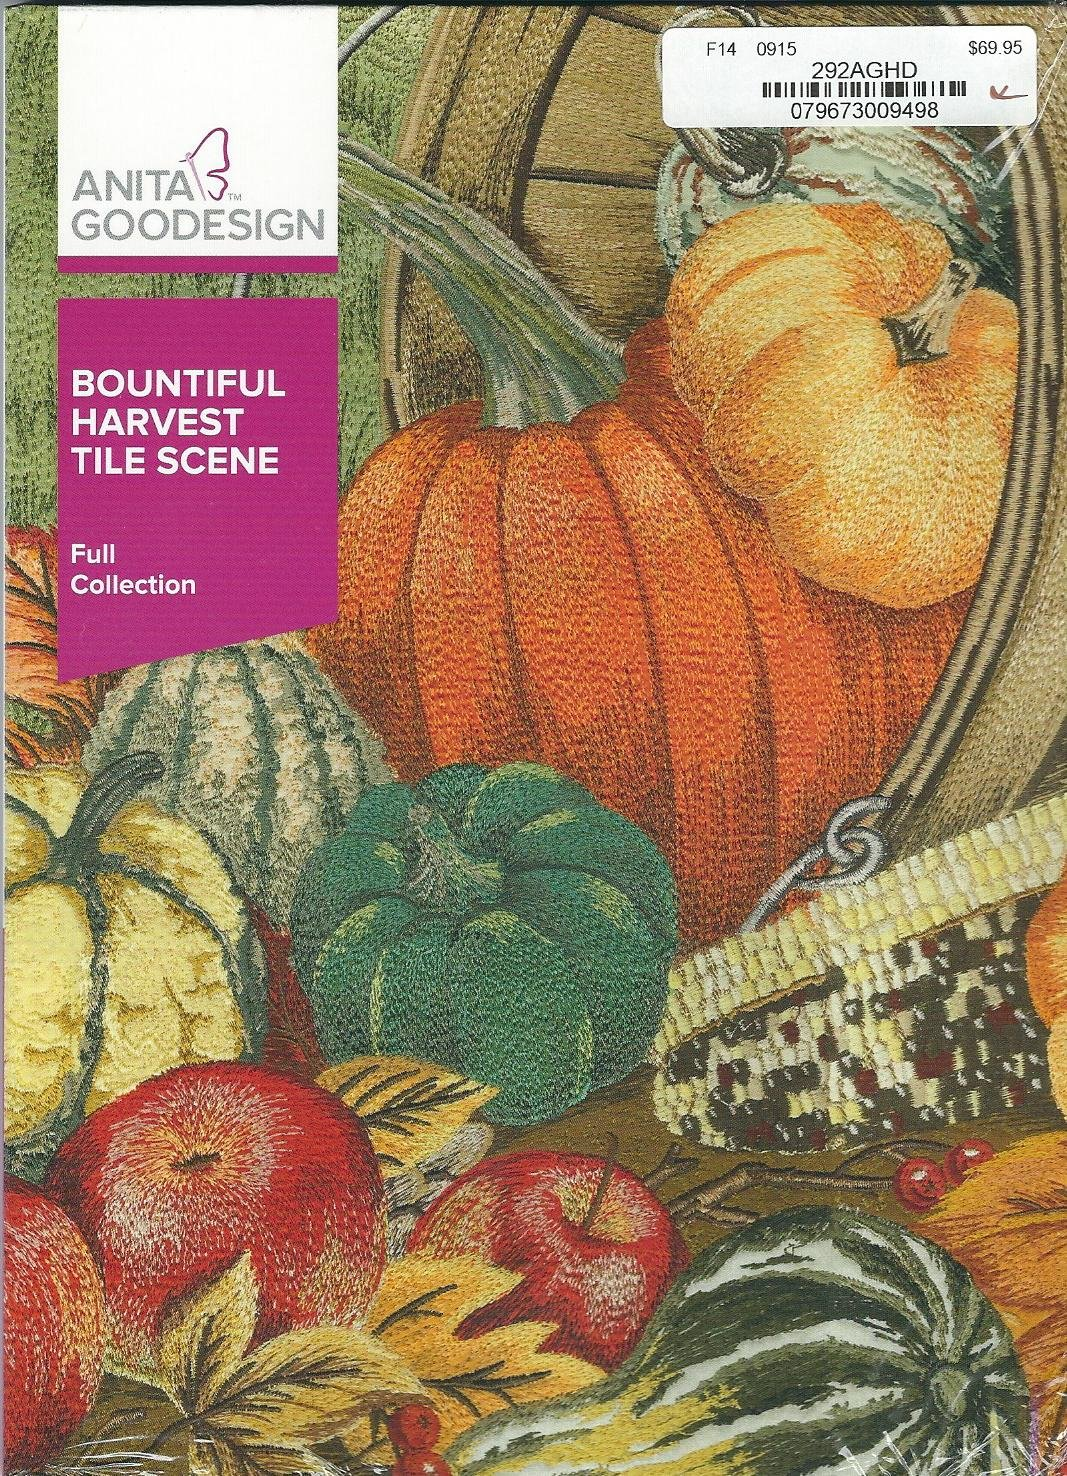 Anita Goodesign - Full Collection - Bountiful Harvest Tile Scene